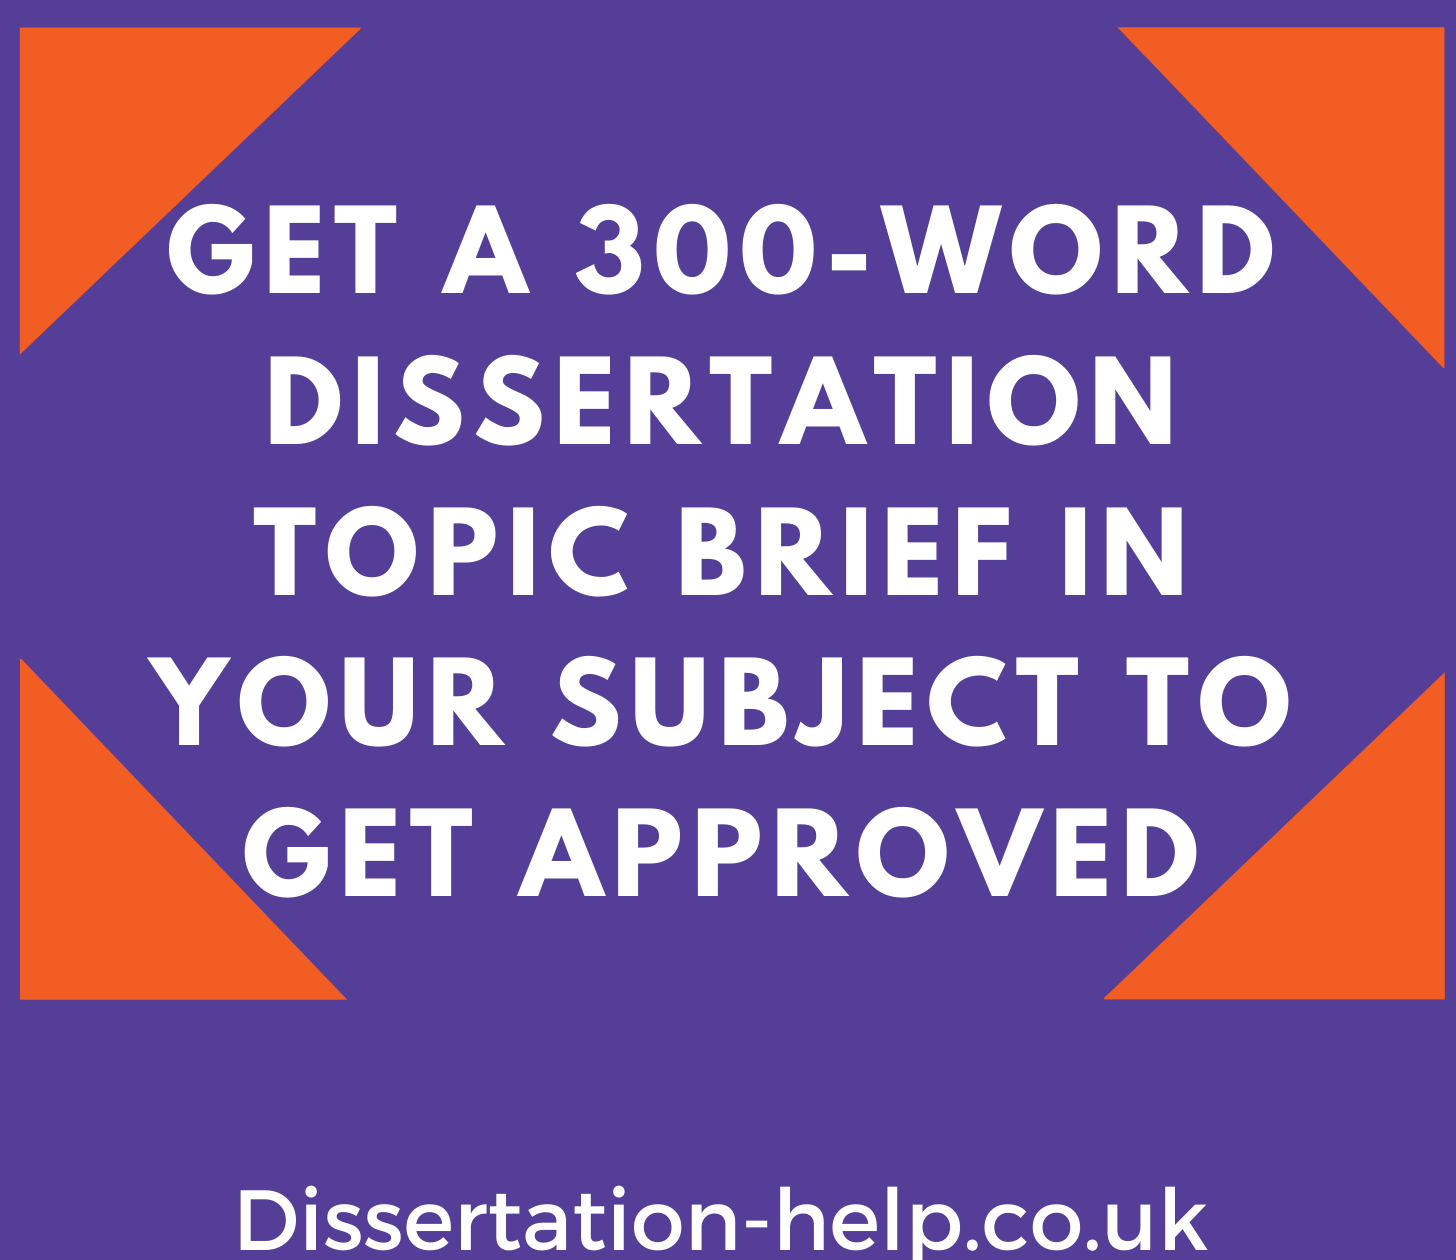 Dissertation Topic Brief